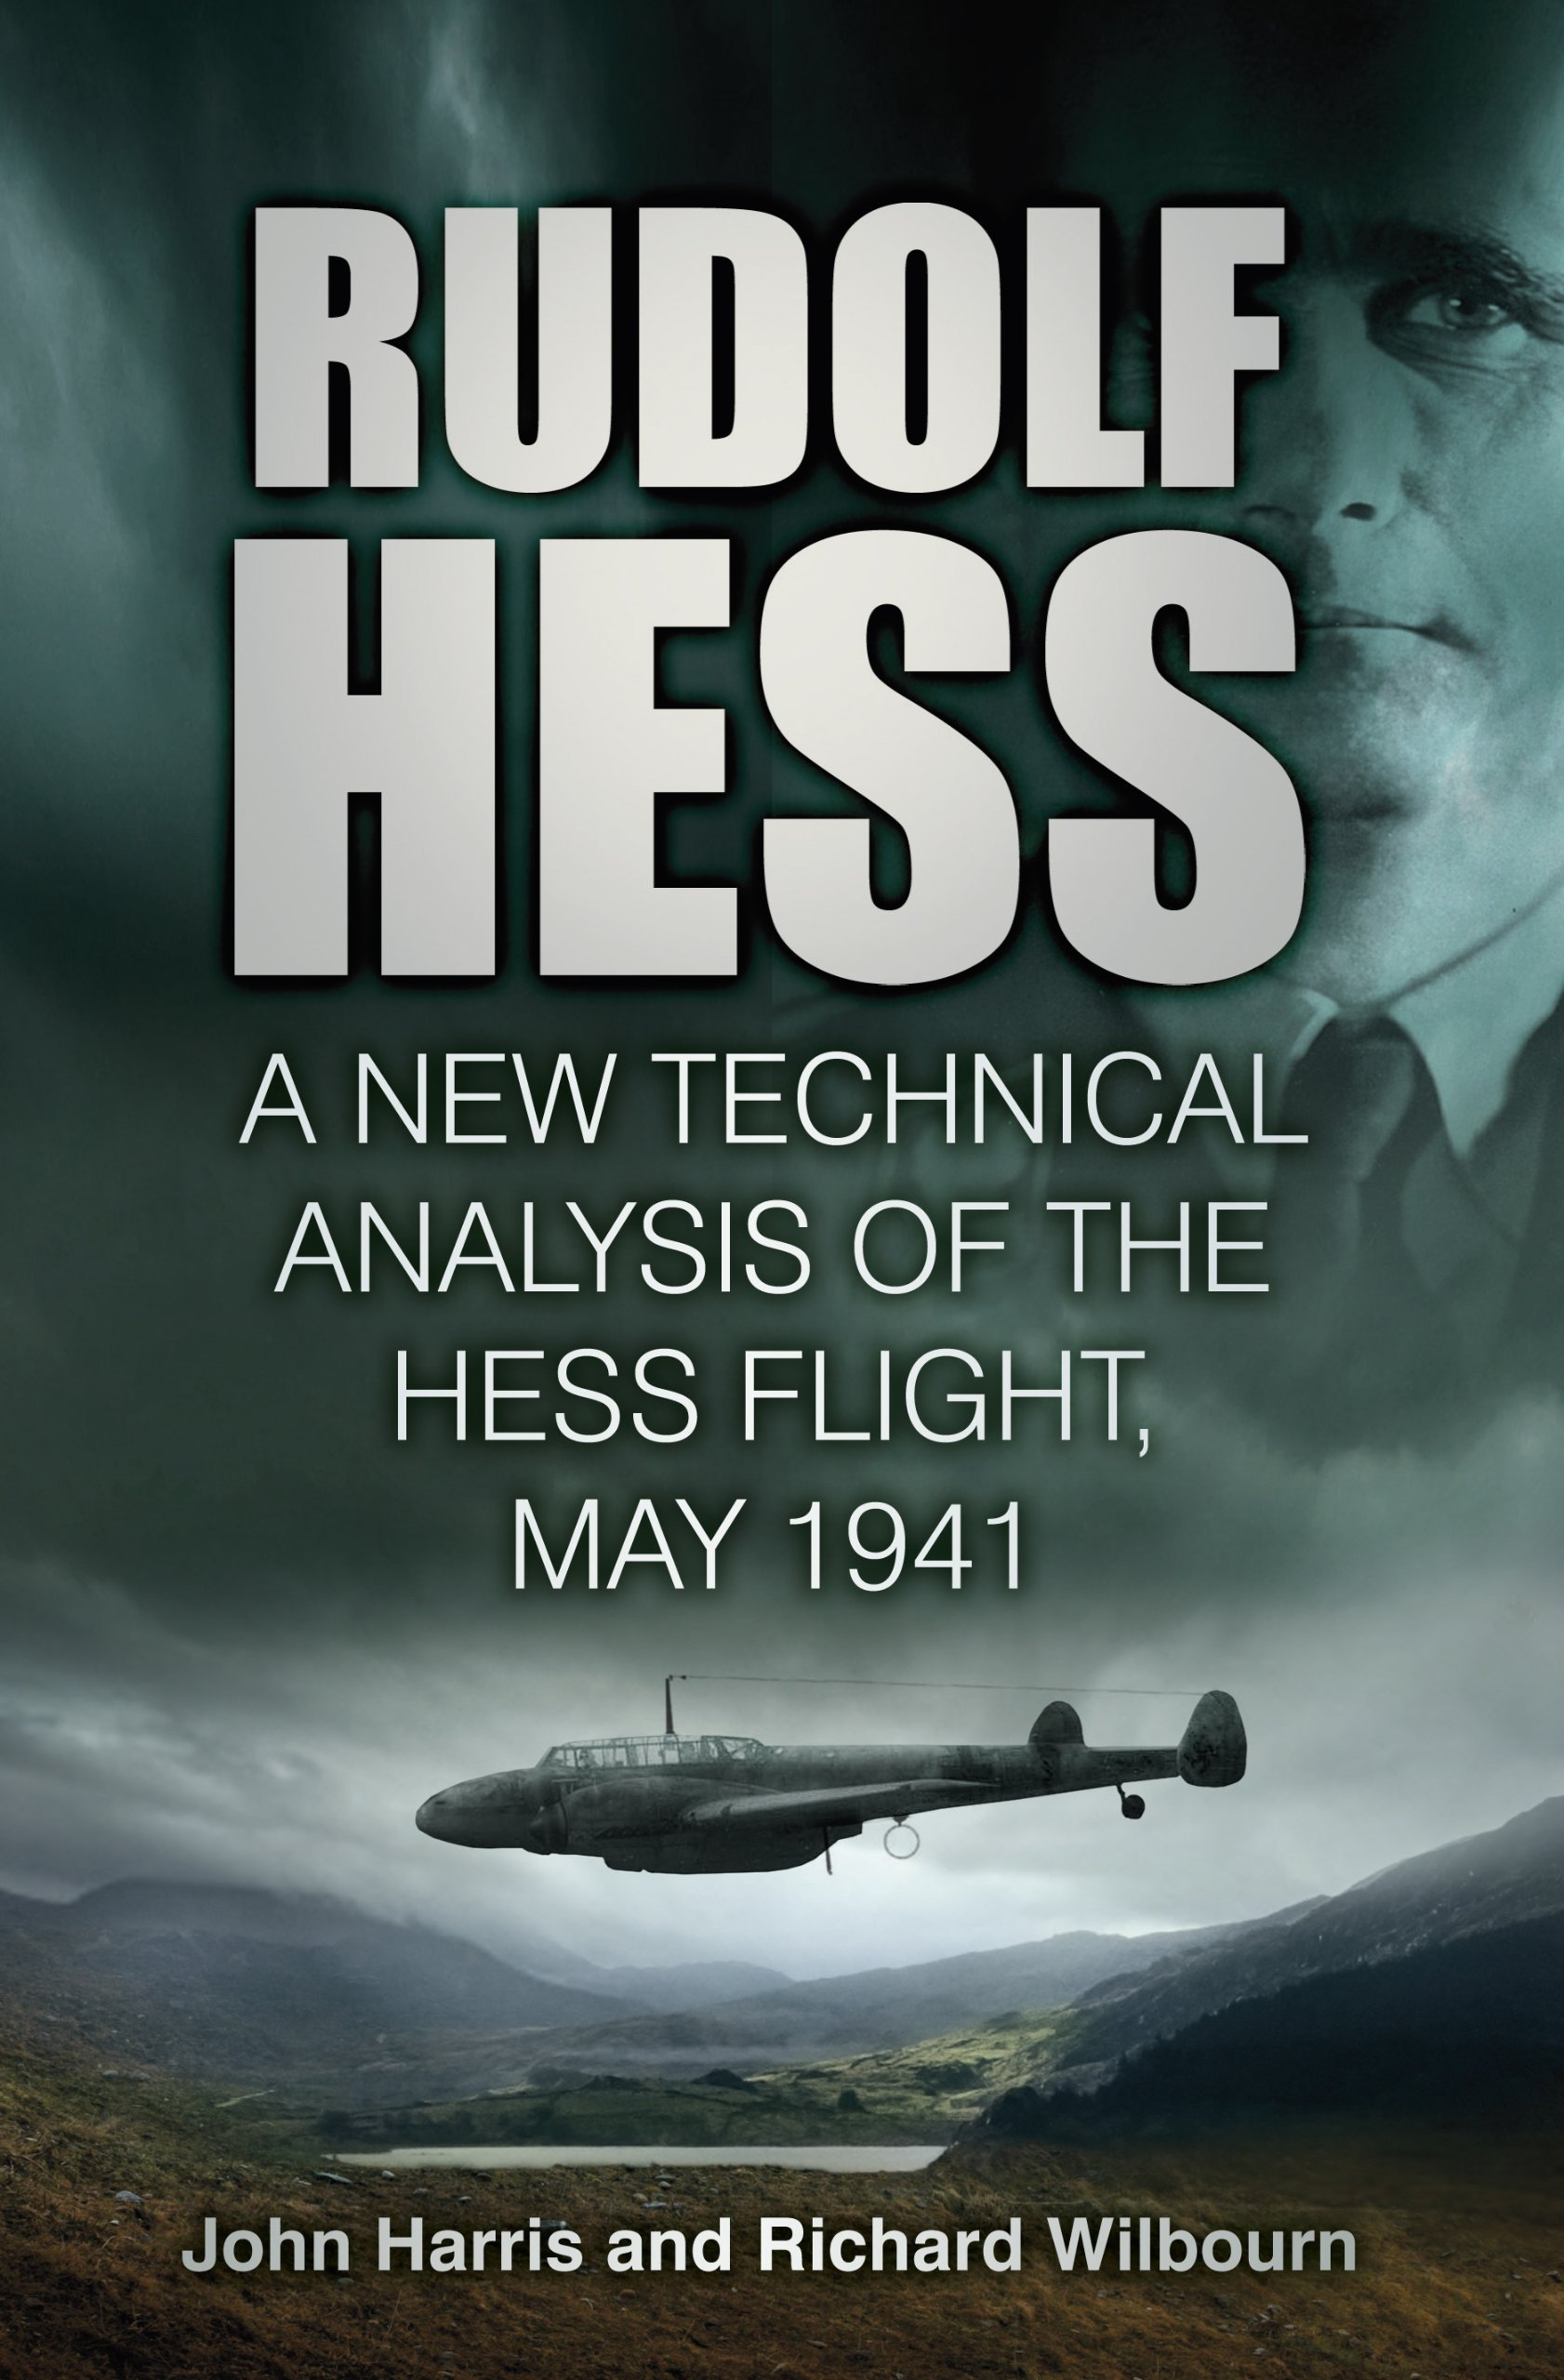 Rudolf Hess  A New Technical Analysis Of The Hess Flight May 1941  English Edition